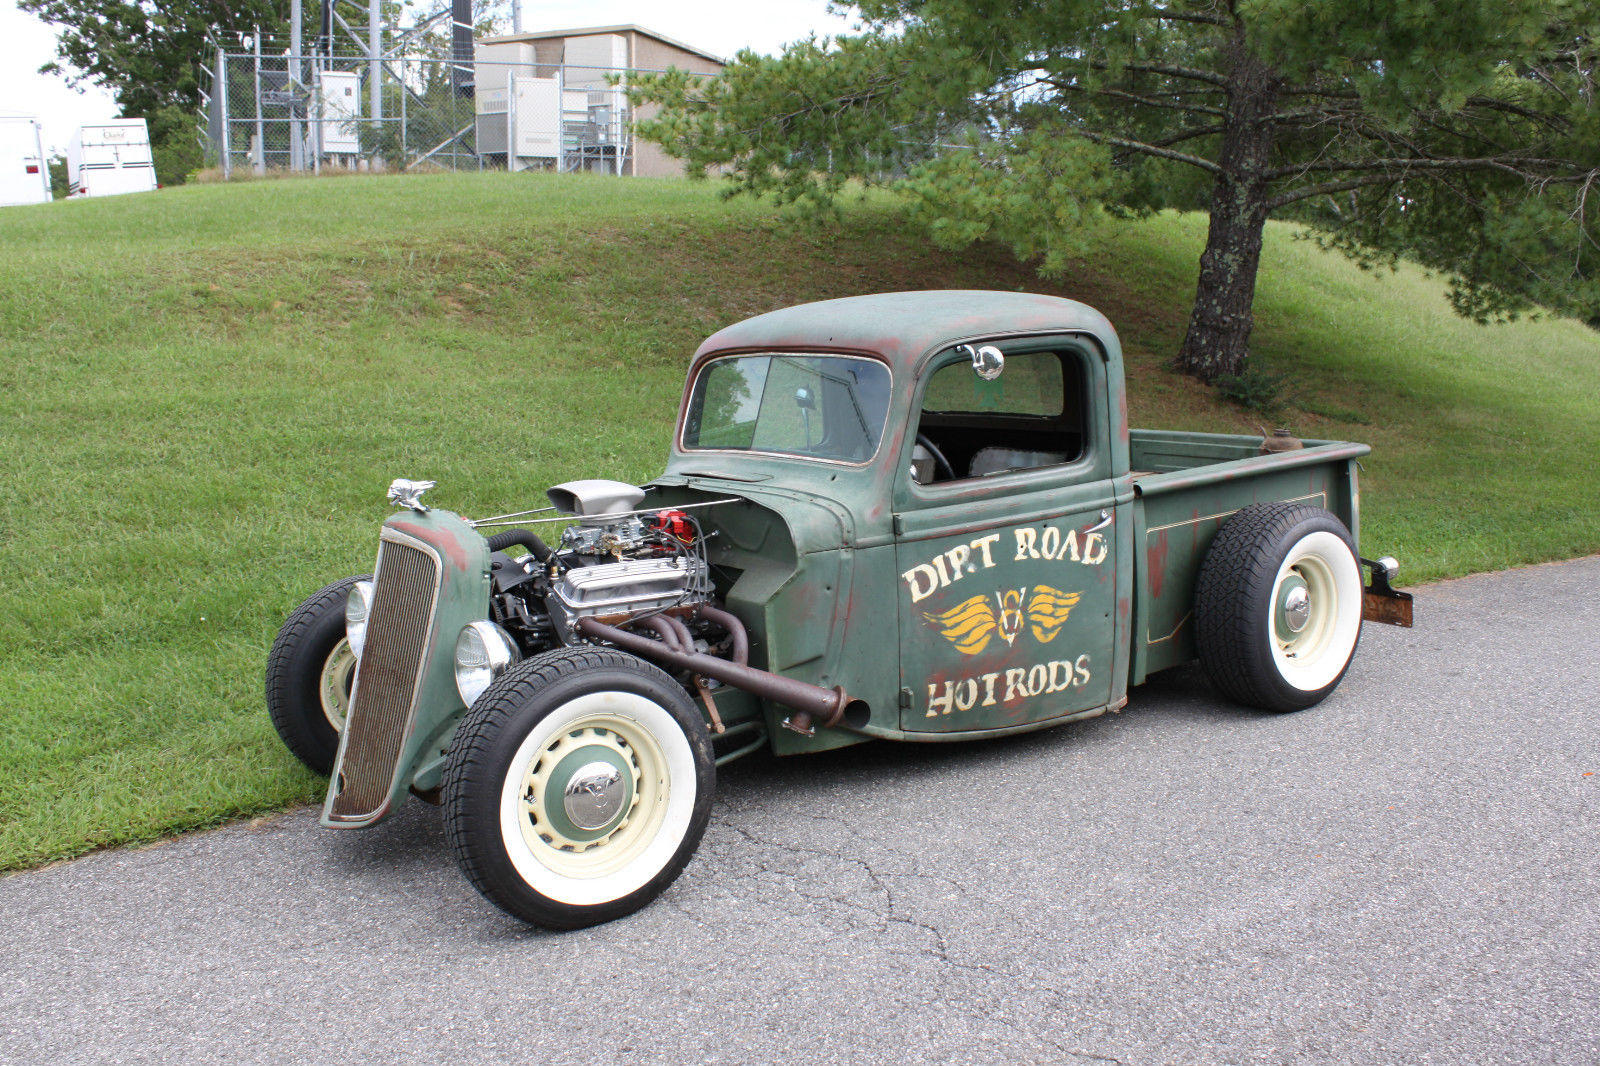 Dirt Road Hot Rods [1938 Ford rat rod w/ 350]